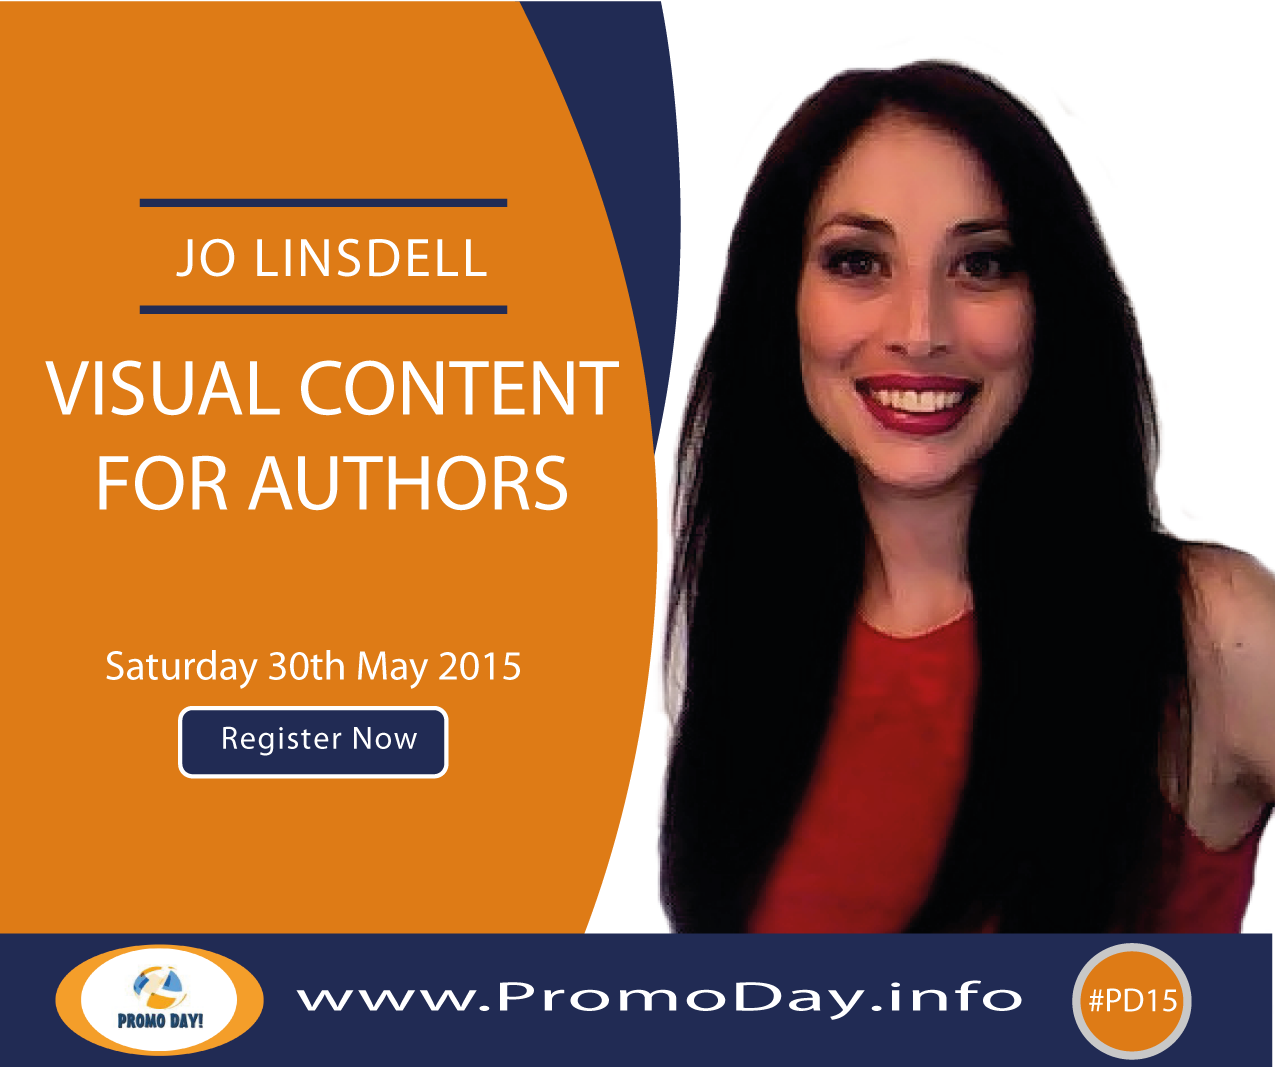 #PD15 Webinar: Visual Content for Authors with Jo Linsdell, www.PromoDay.info #free #event